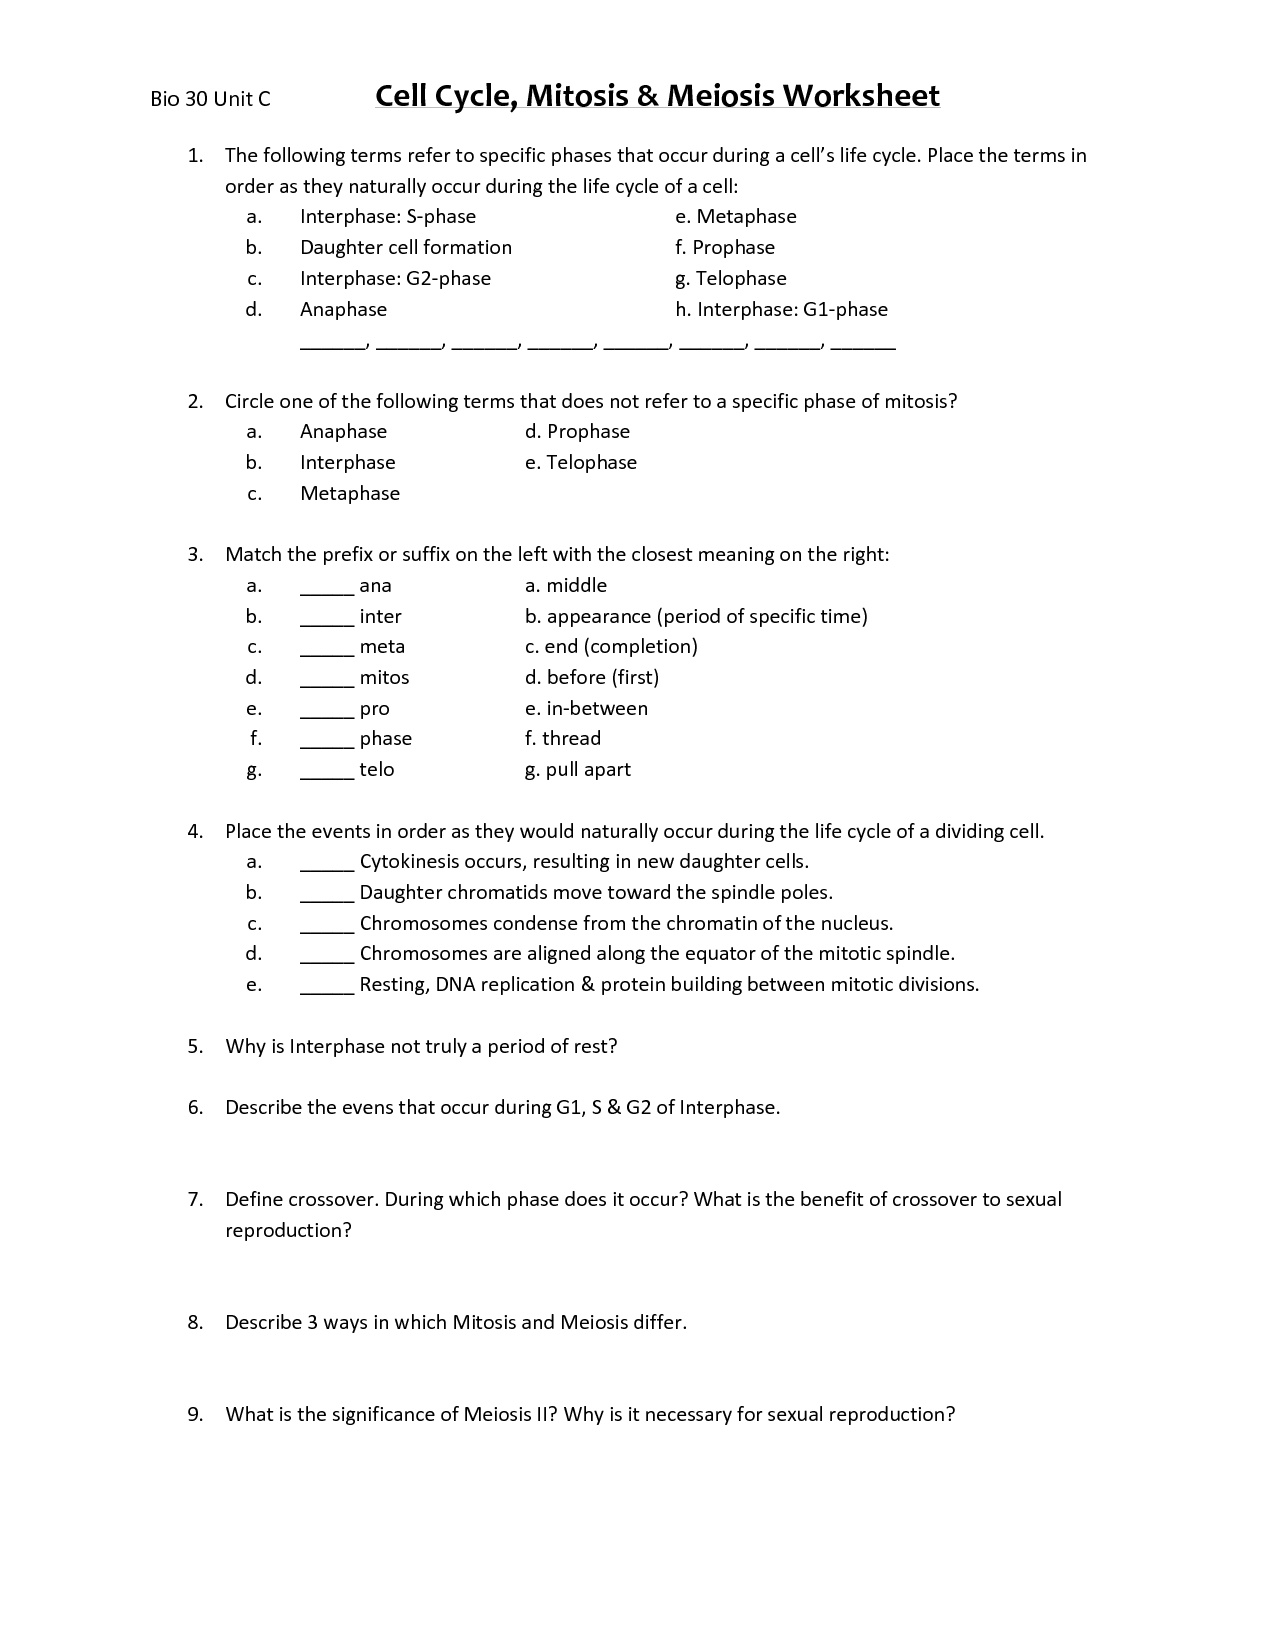 Worksheet Comparing Mitosis And Meiosis Worksheet Answers